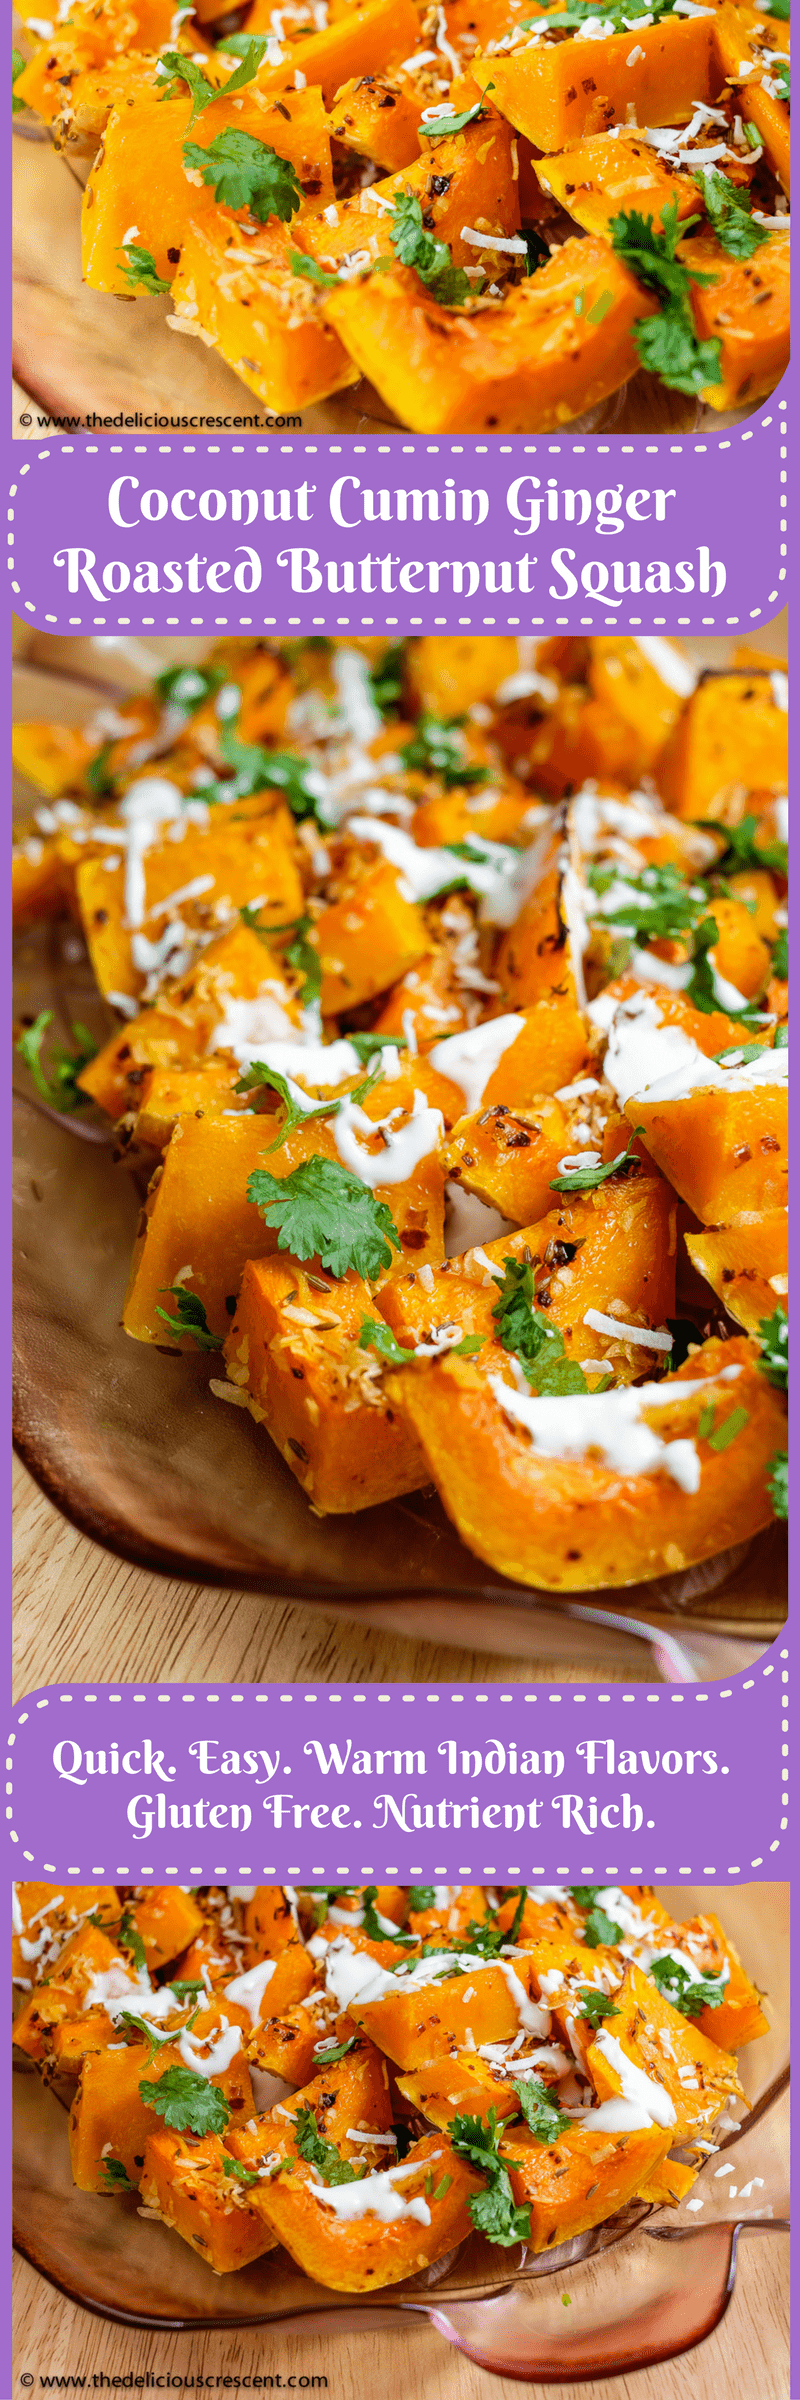 Coconut Cumin Ginger Roasted Butternut Squash – super easy, quick, scrumptious, gluten free, perfectly tender, packed in Indian flavors and rich in nutrients! A delicious and spicy way to warm up this winter!